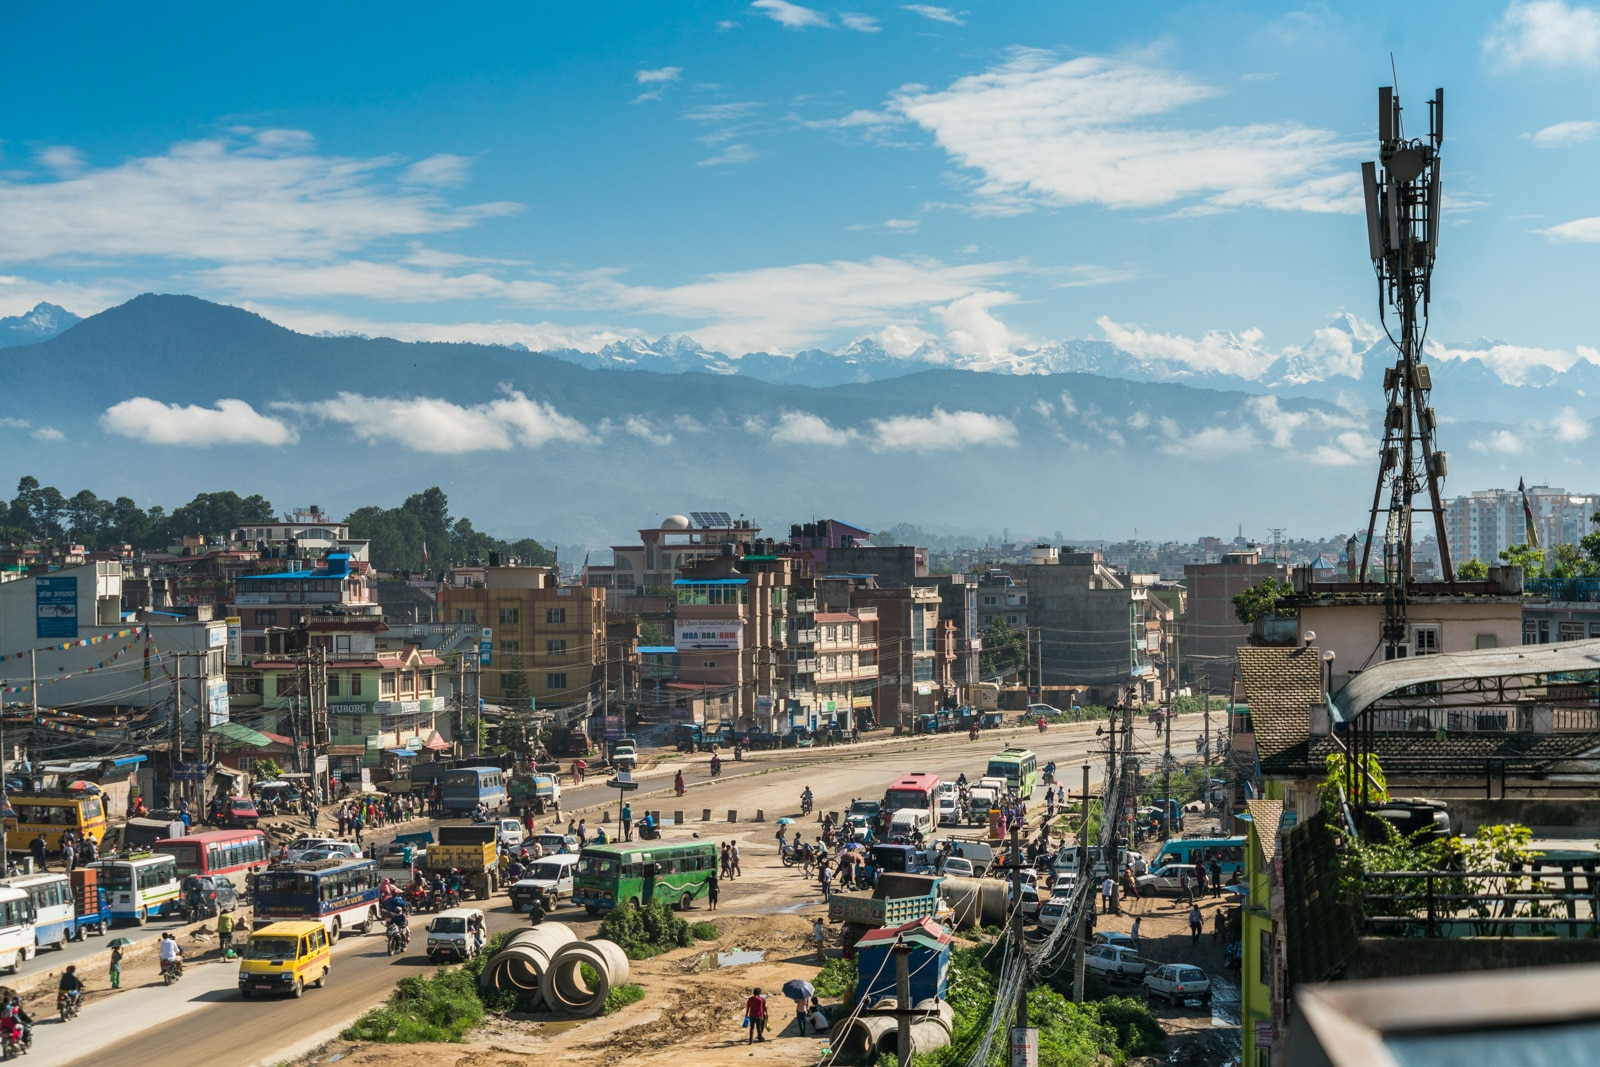 What it's like to travel in Nepal during monsoon - Some snow capped mountains visible from Patan, Nepal - Lost With Purpose travel blog